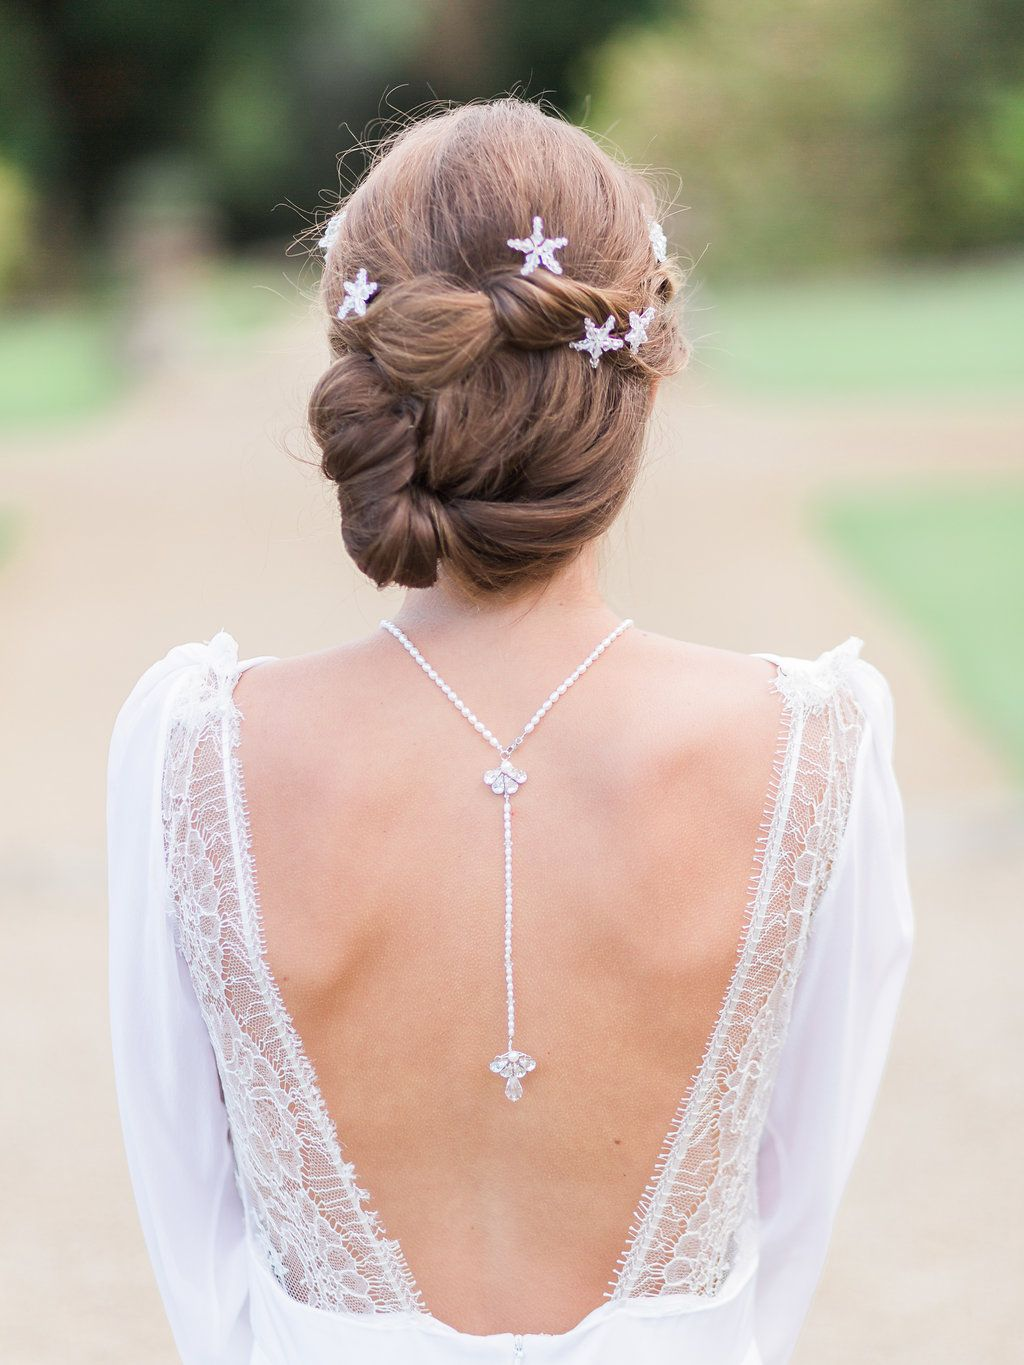 Hermione harbutt deco back necklace and orion hairpins amy fanton